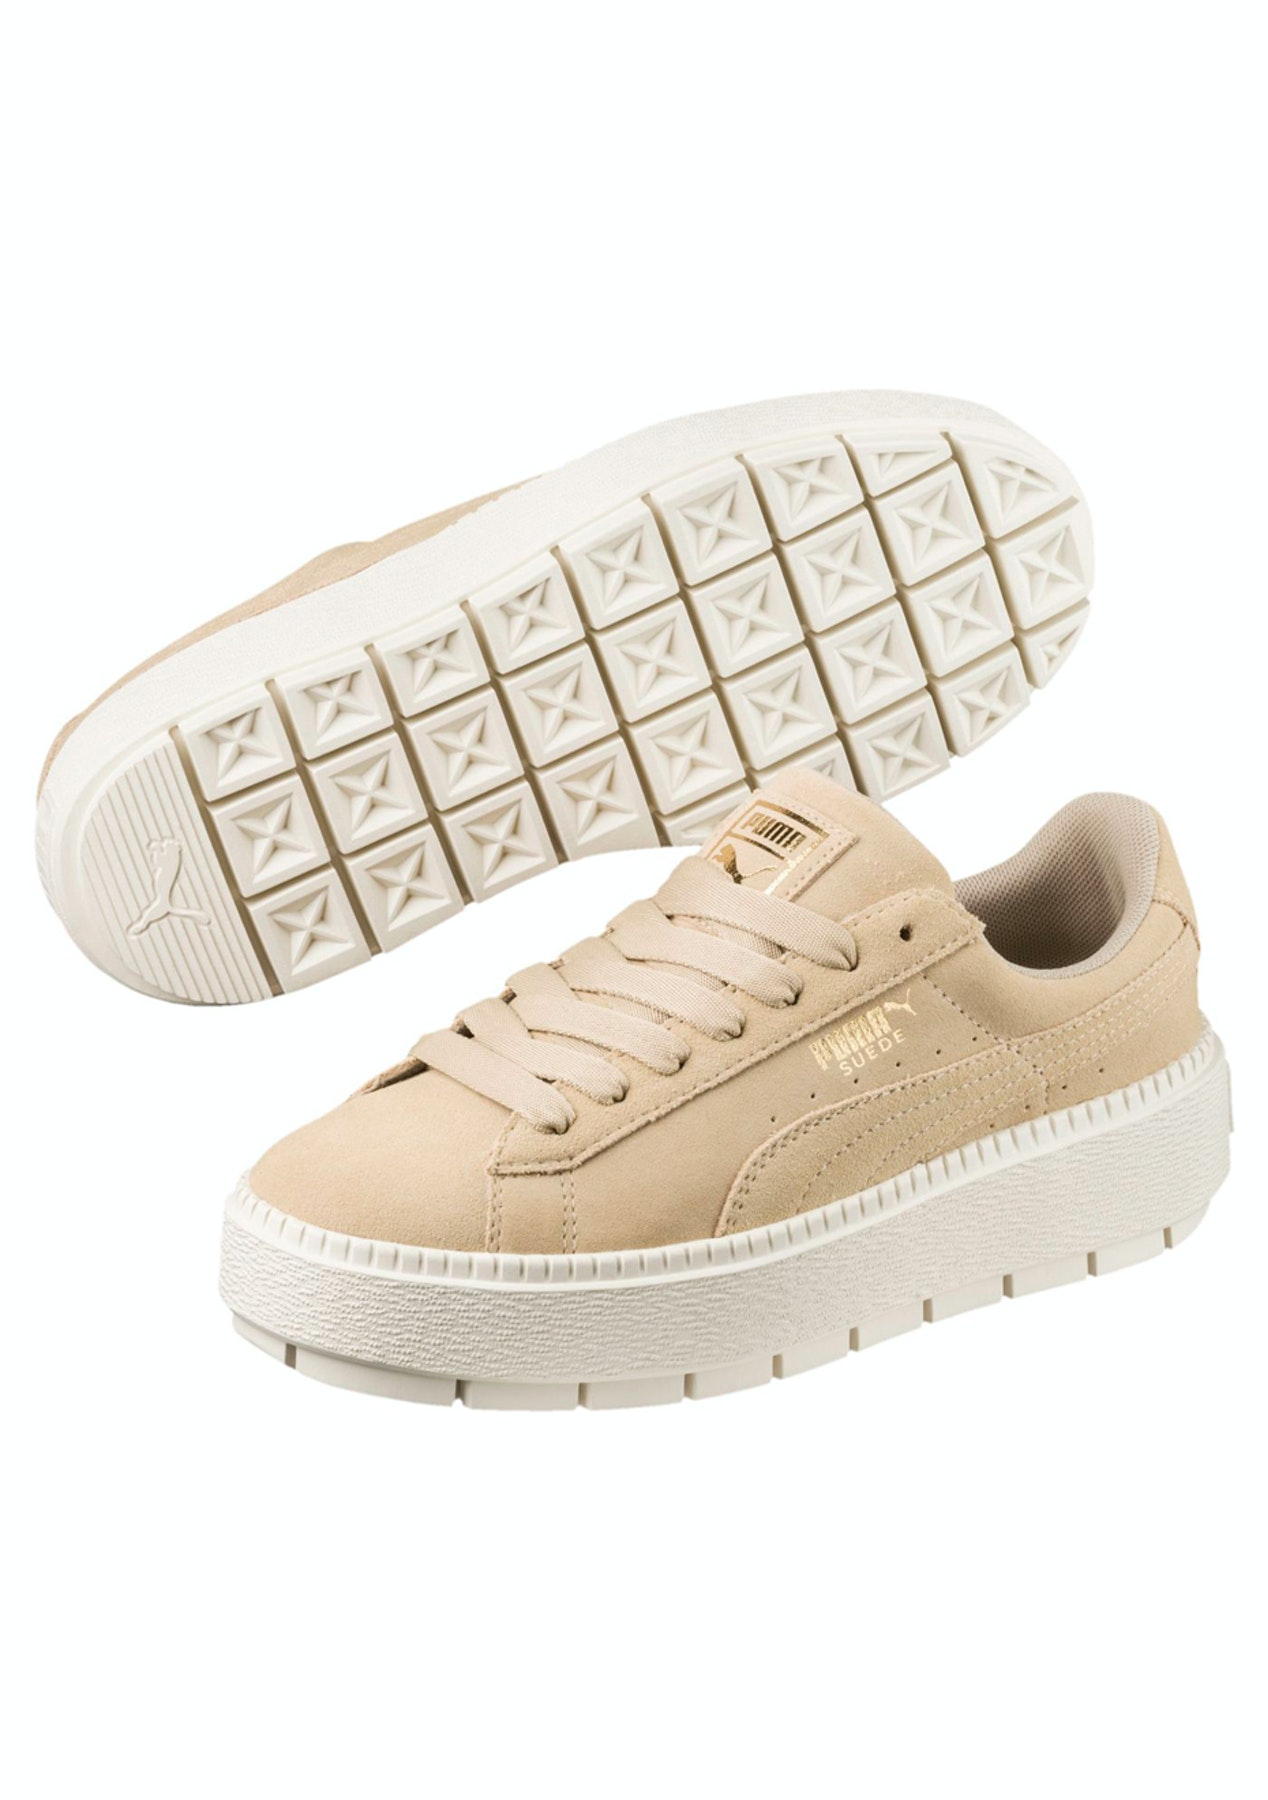 bf430160590 Puma Womens - Suede Platform Trace - Beige - The Big Warehouse Clearout -  Onceit